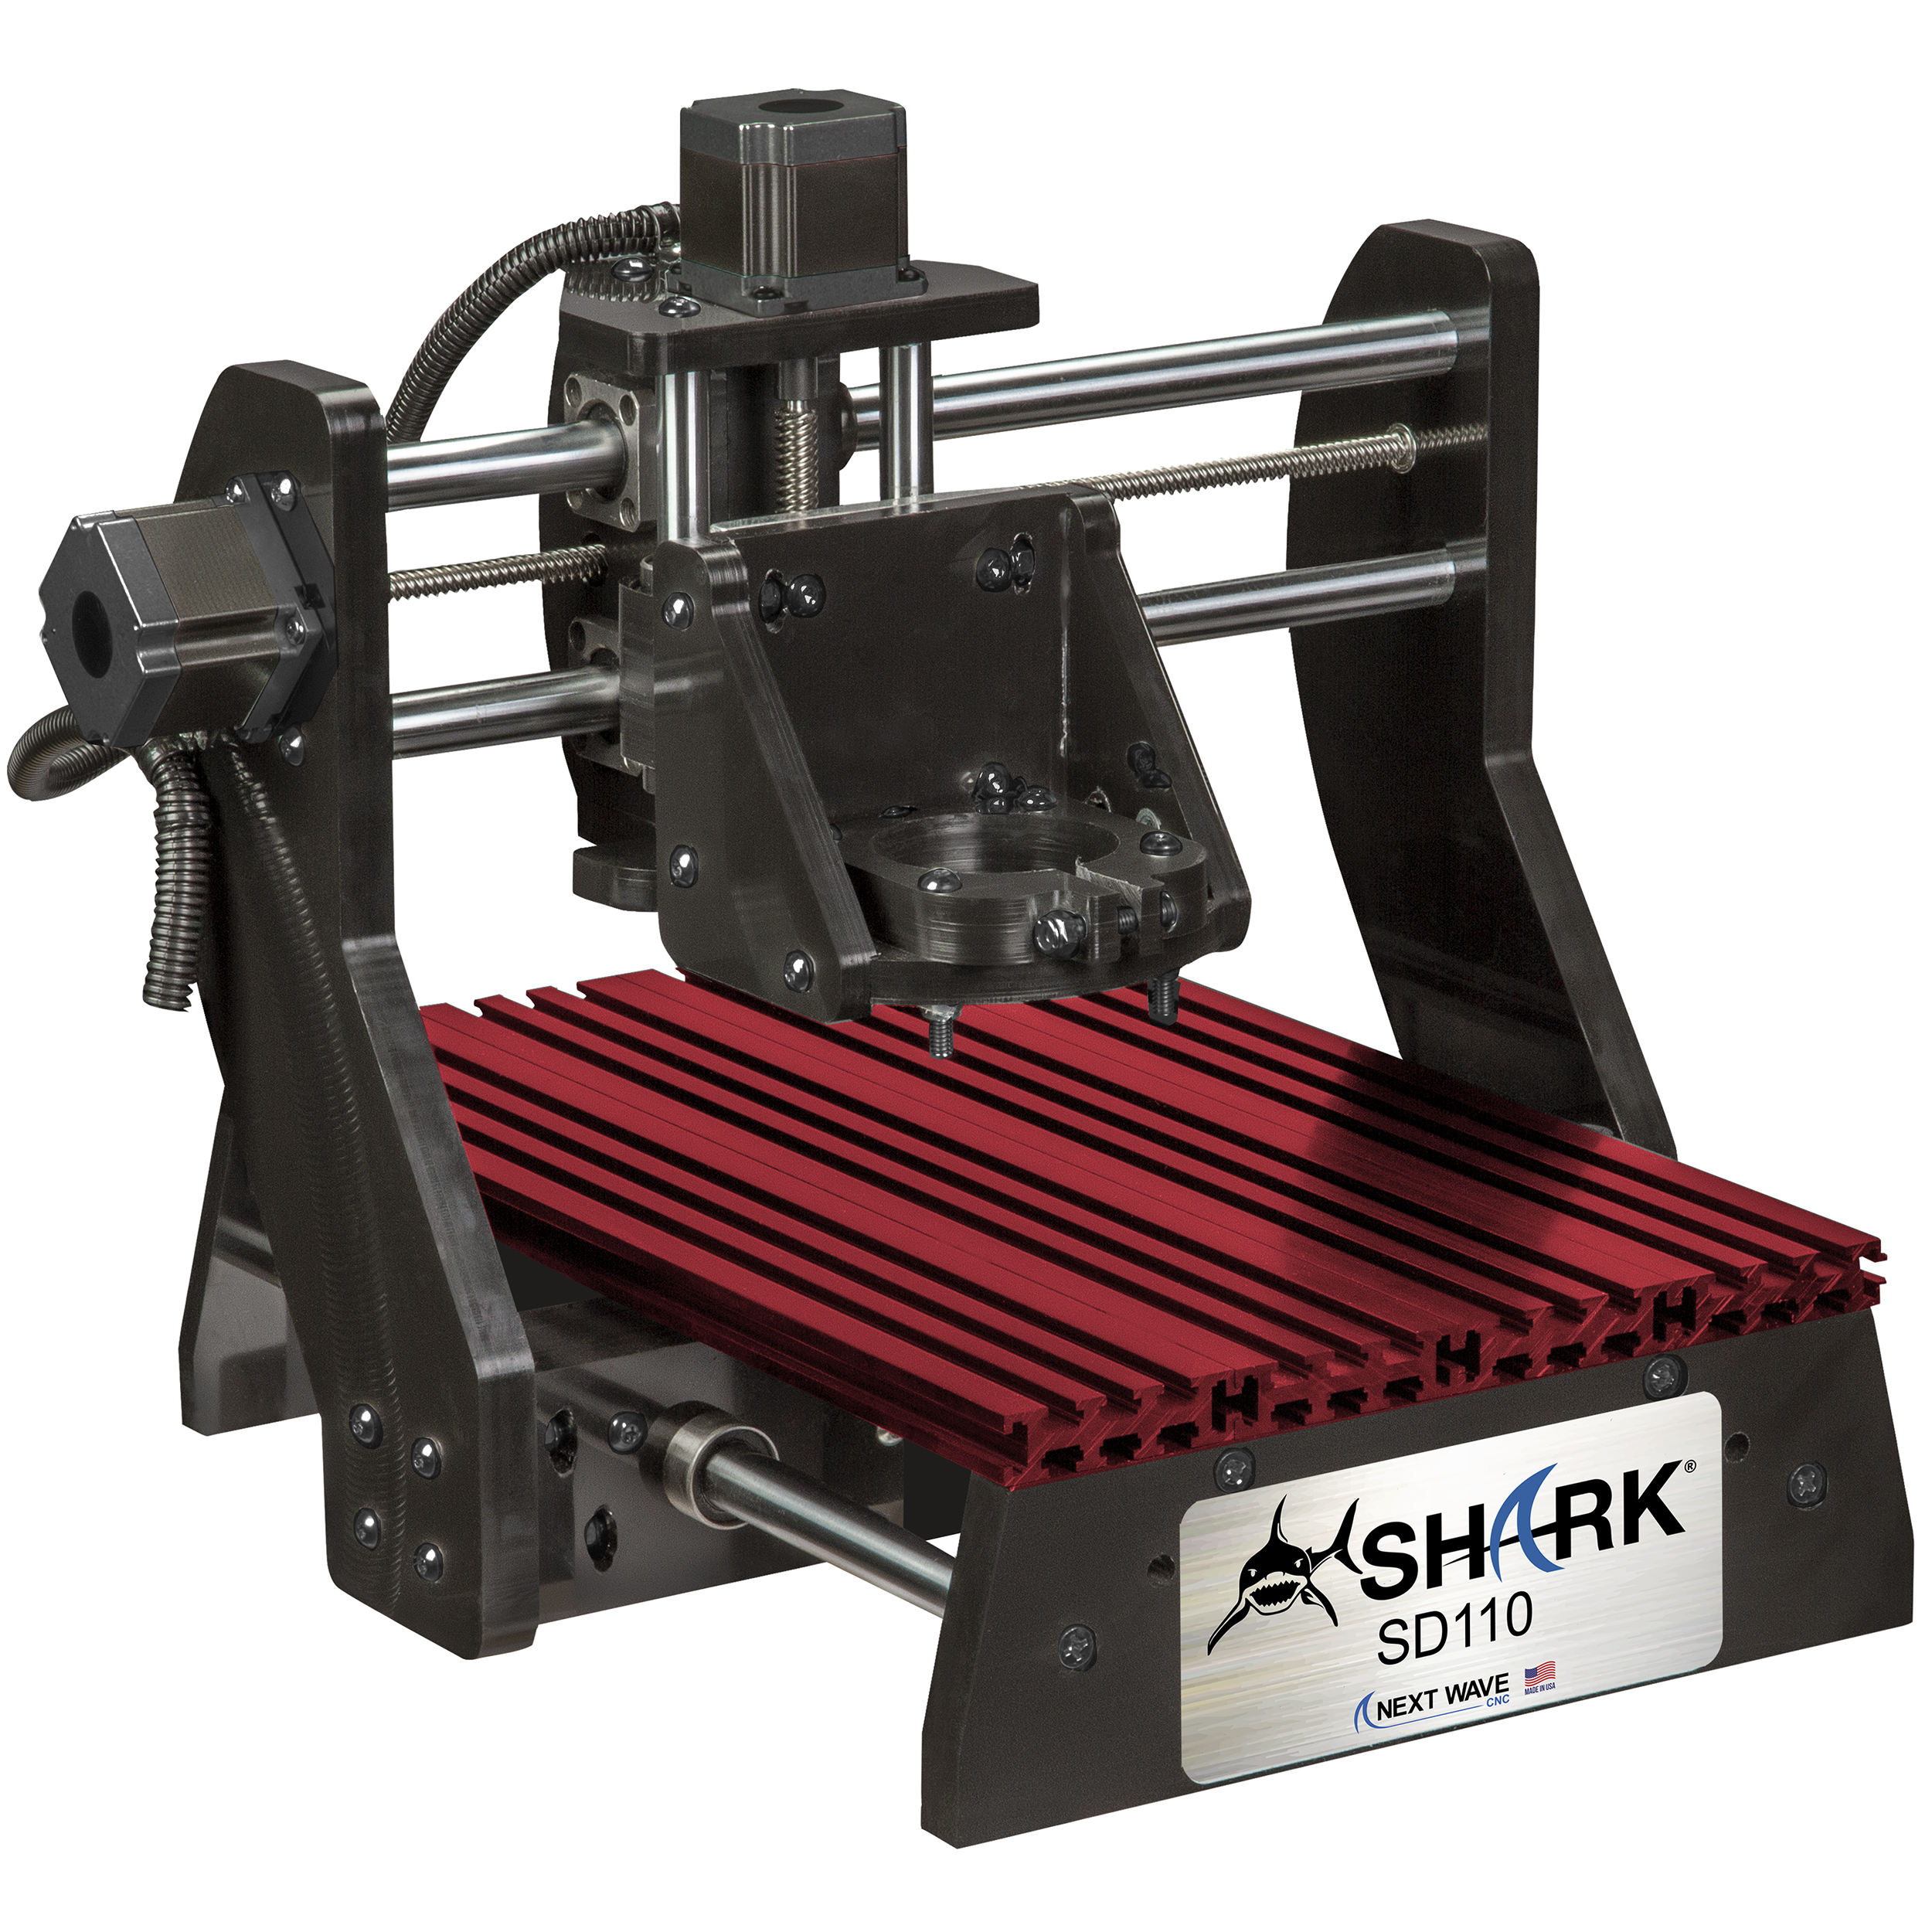 SHARK SD110 CNC Machine